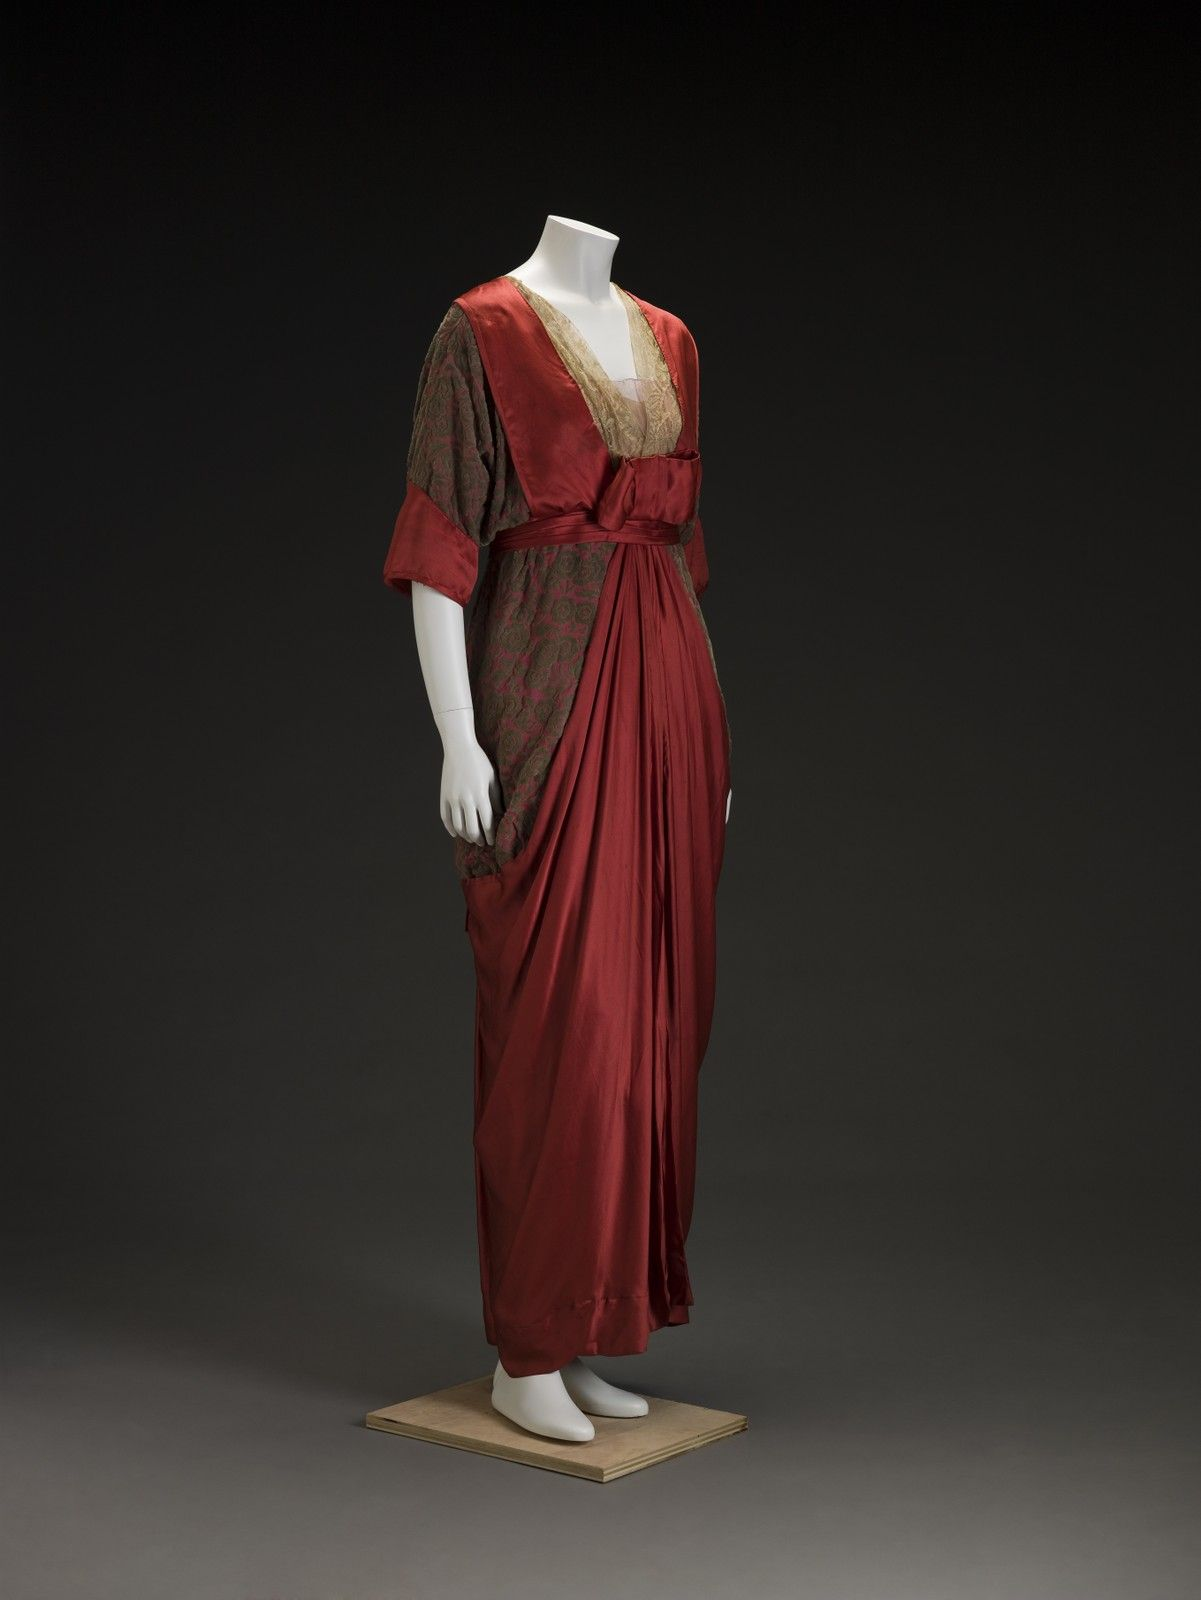 Dress, American, ca. 1910s. The voided silk velvet fabric, with its pattern of stylized roses, complements the graceful draping of the vibrantly colored silk satin fabric of this dress.